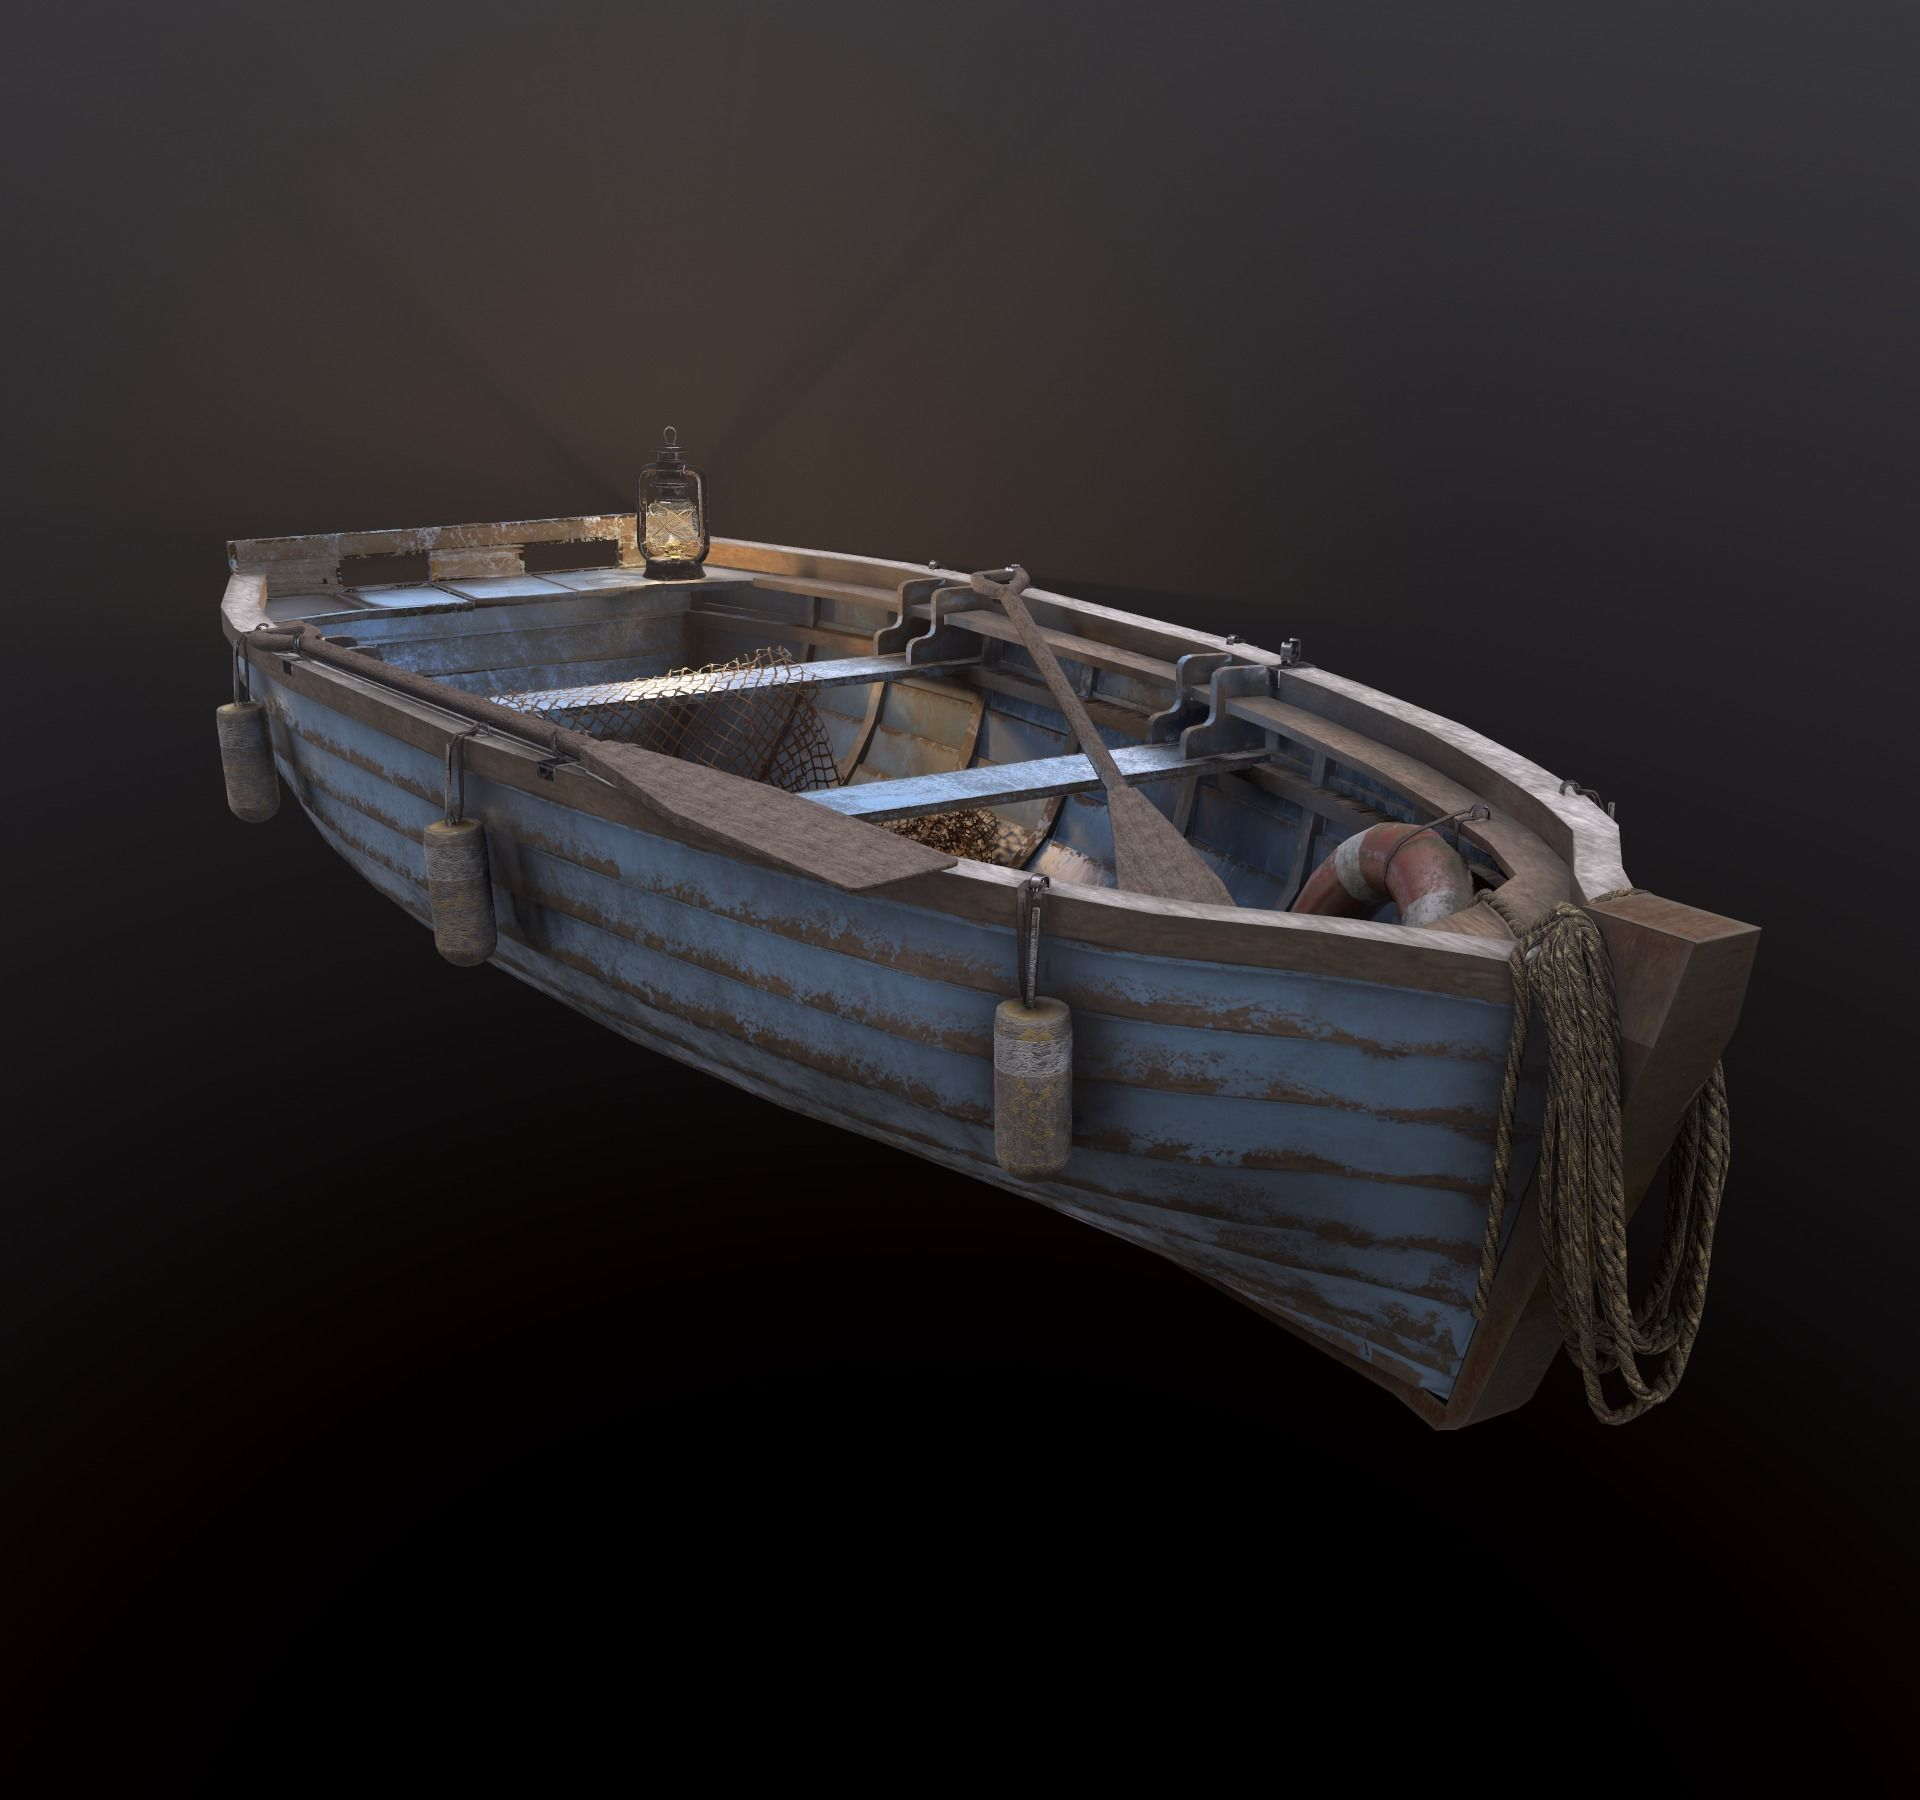 Fishing Boat with tools